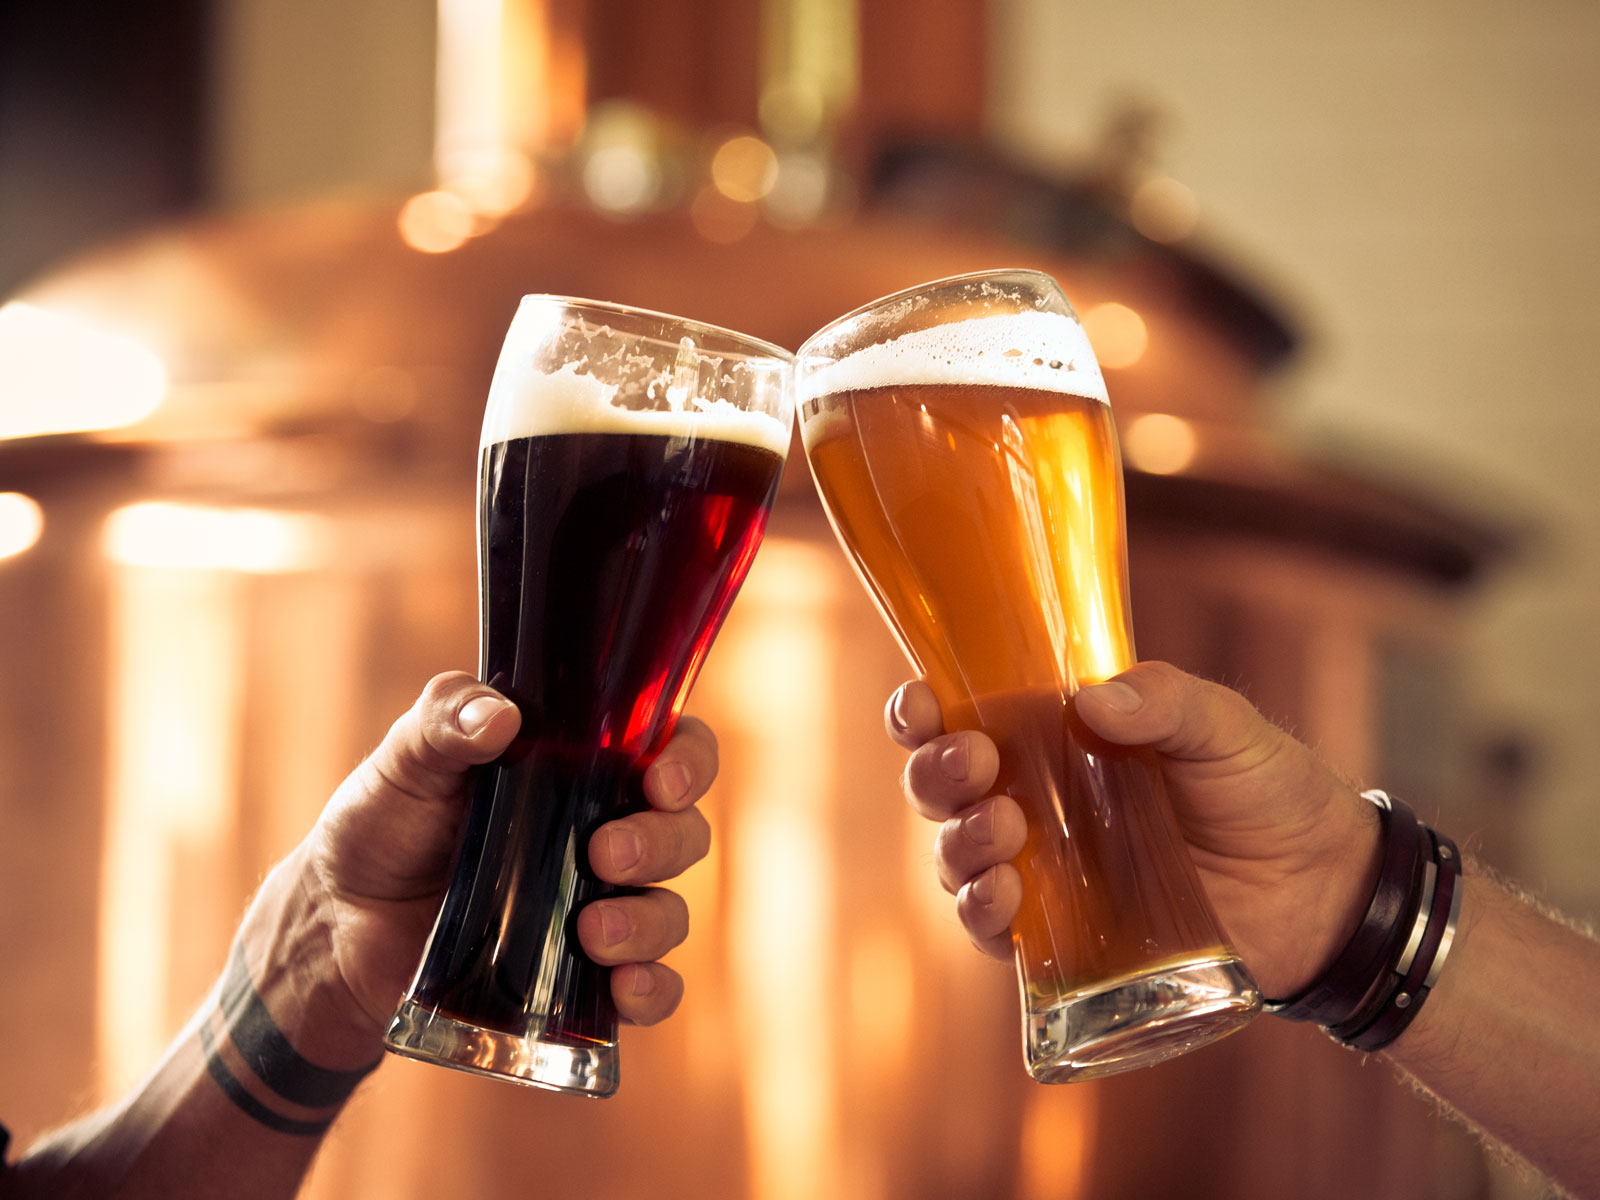 The 50 Fastest Growing Craft Breweries in America, According to the Brewers Association